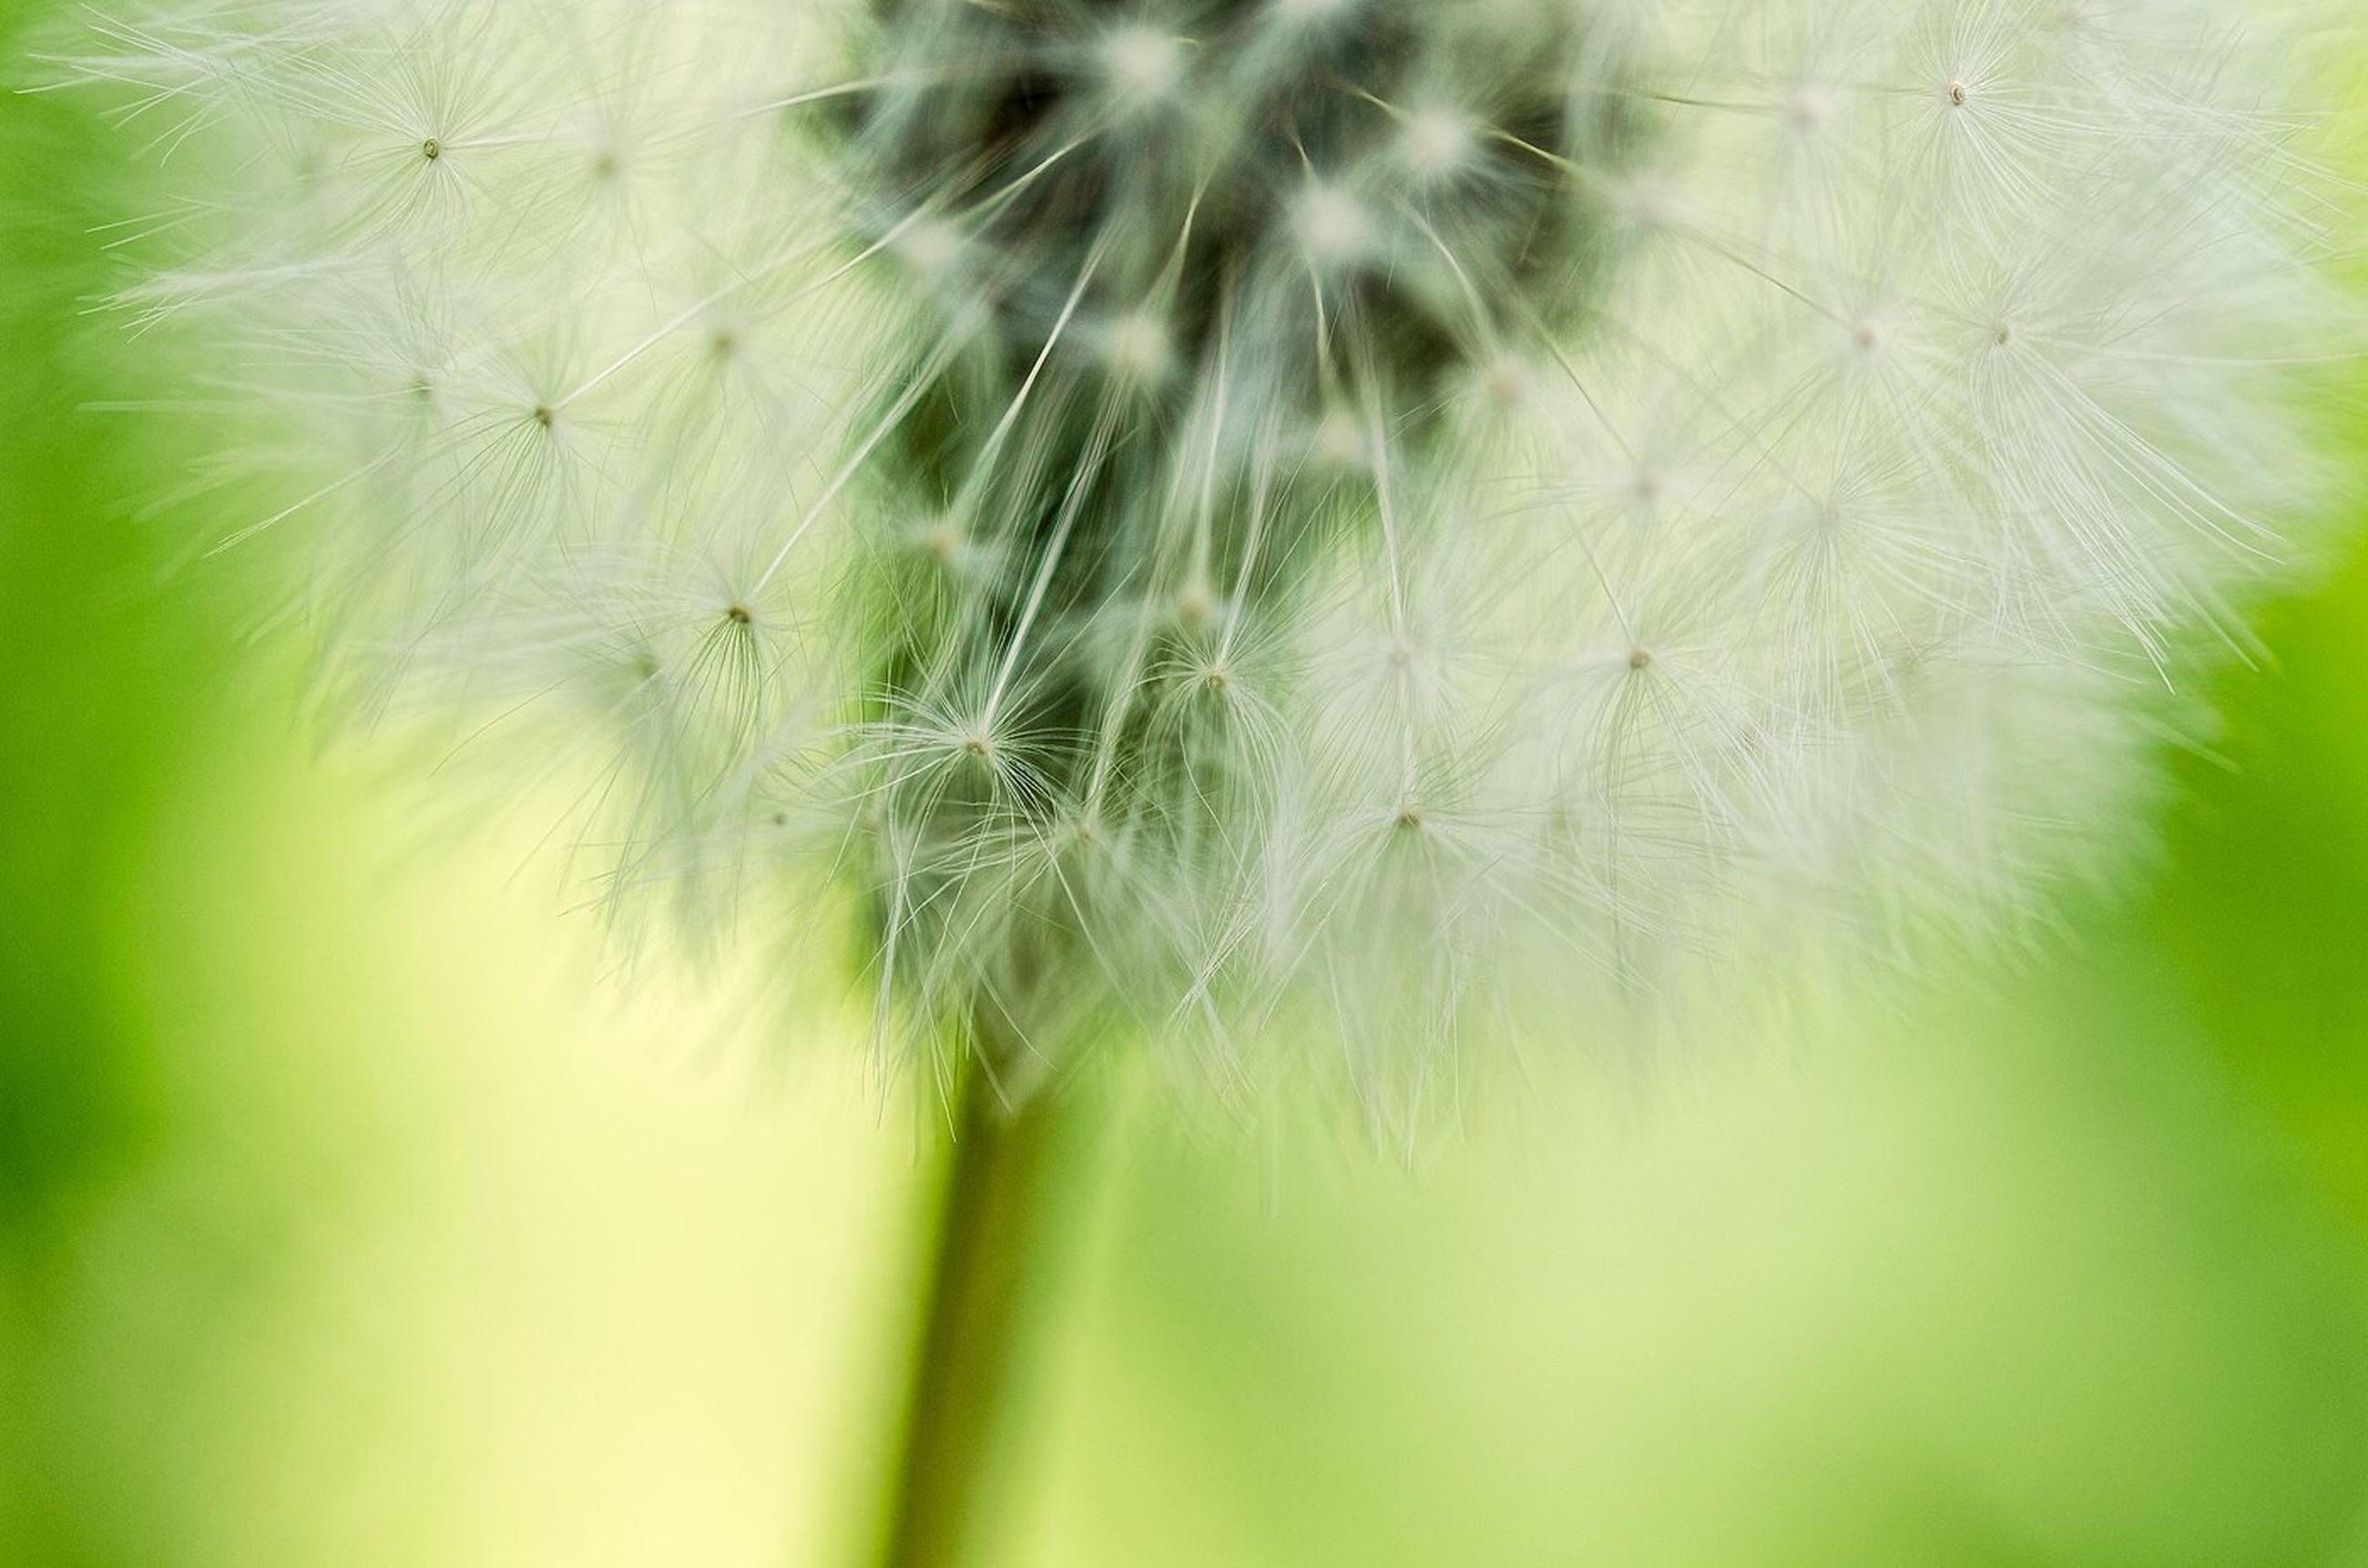 dandelion, growth, flower, fragility, close-up, freshness, nature, beauty in nature, single flower, flower head, softness, selective focus, focus on foreground, plant, uncultivated, wildflower, stem, dandelion seed, day, outdoors